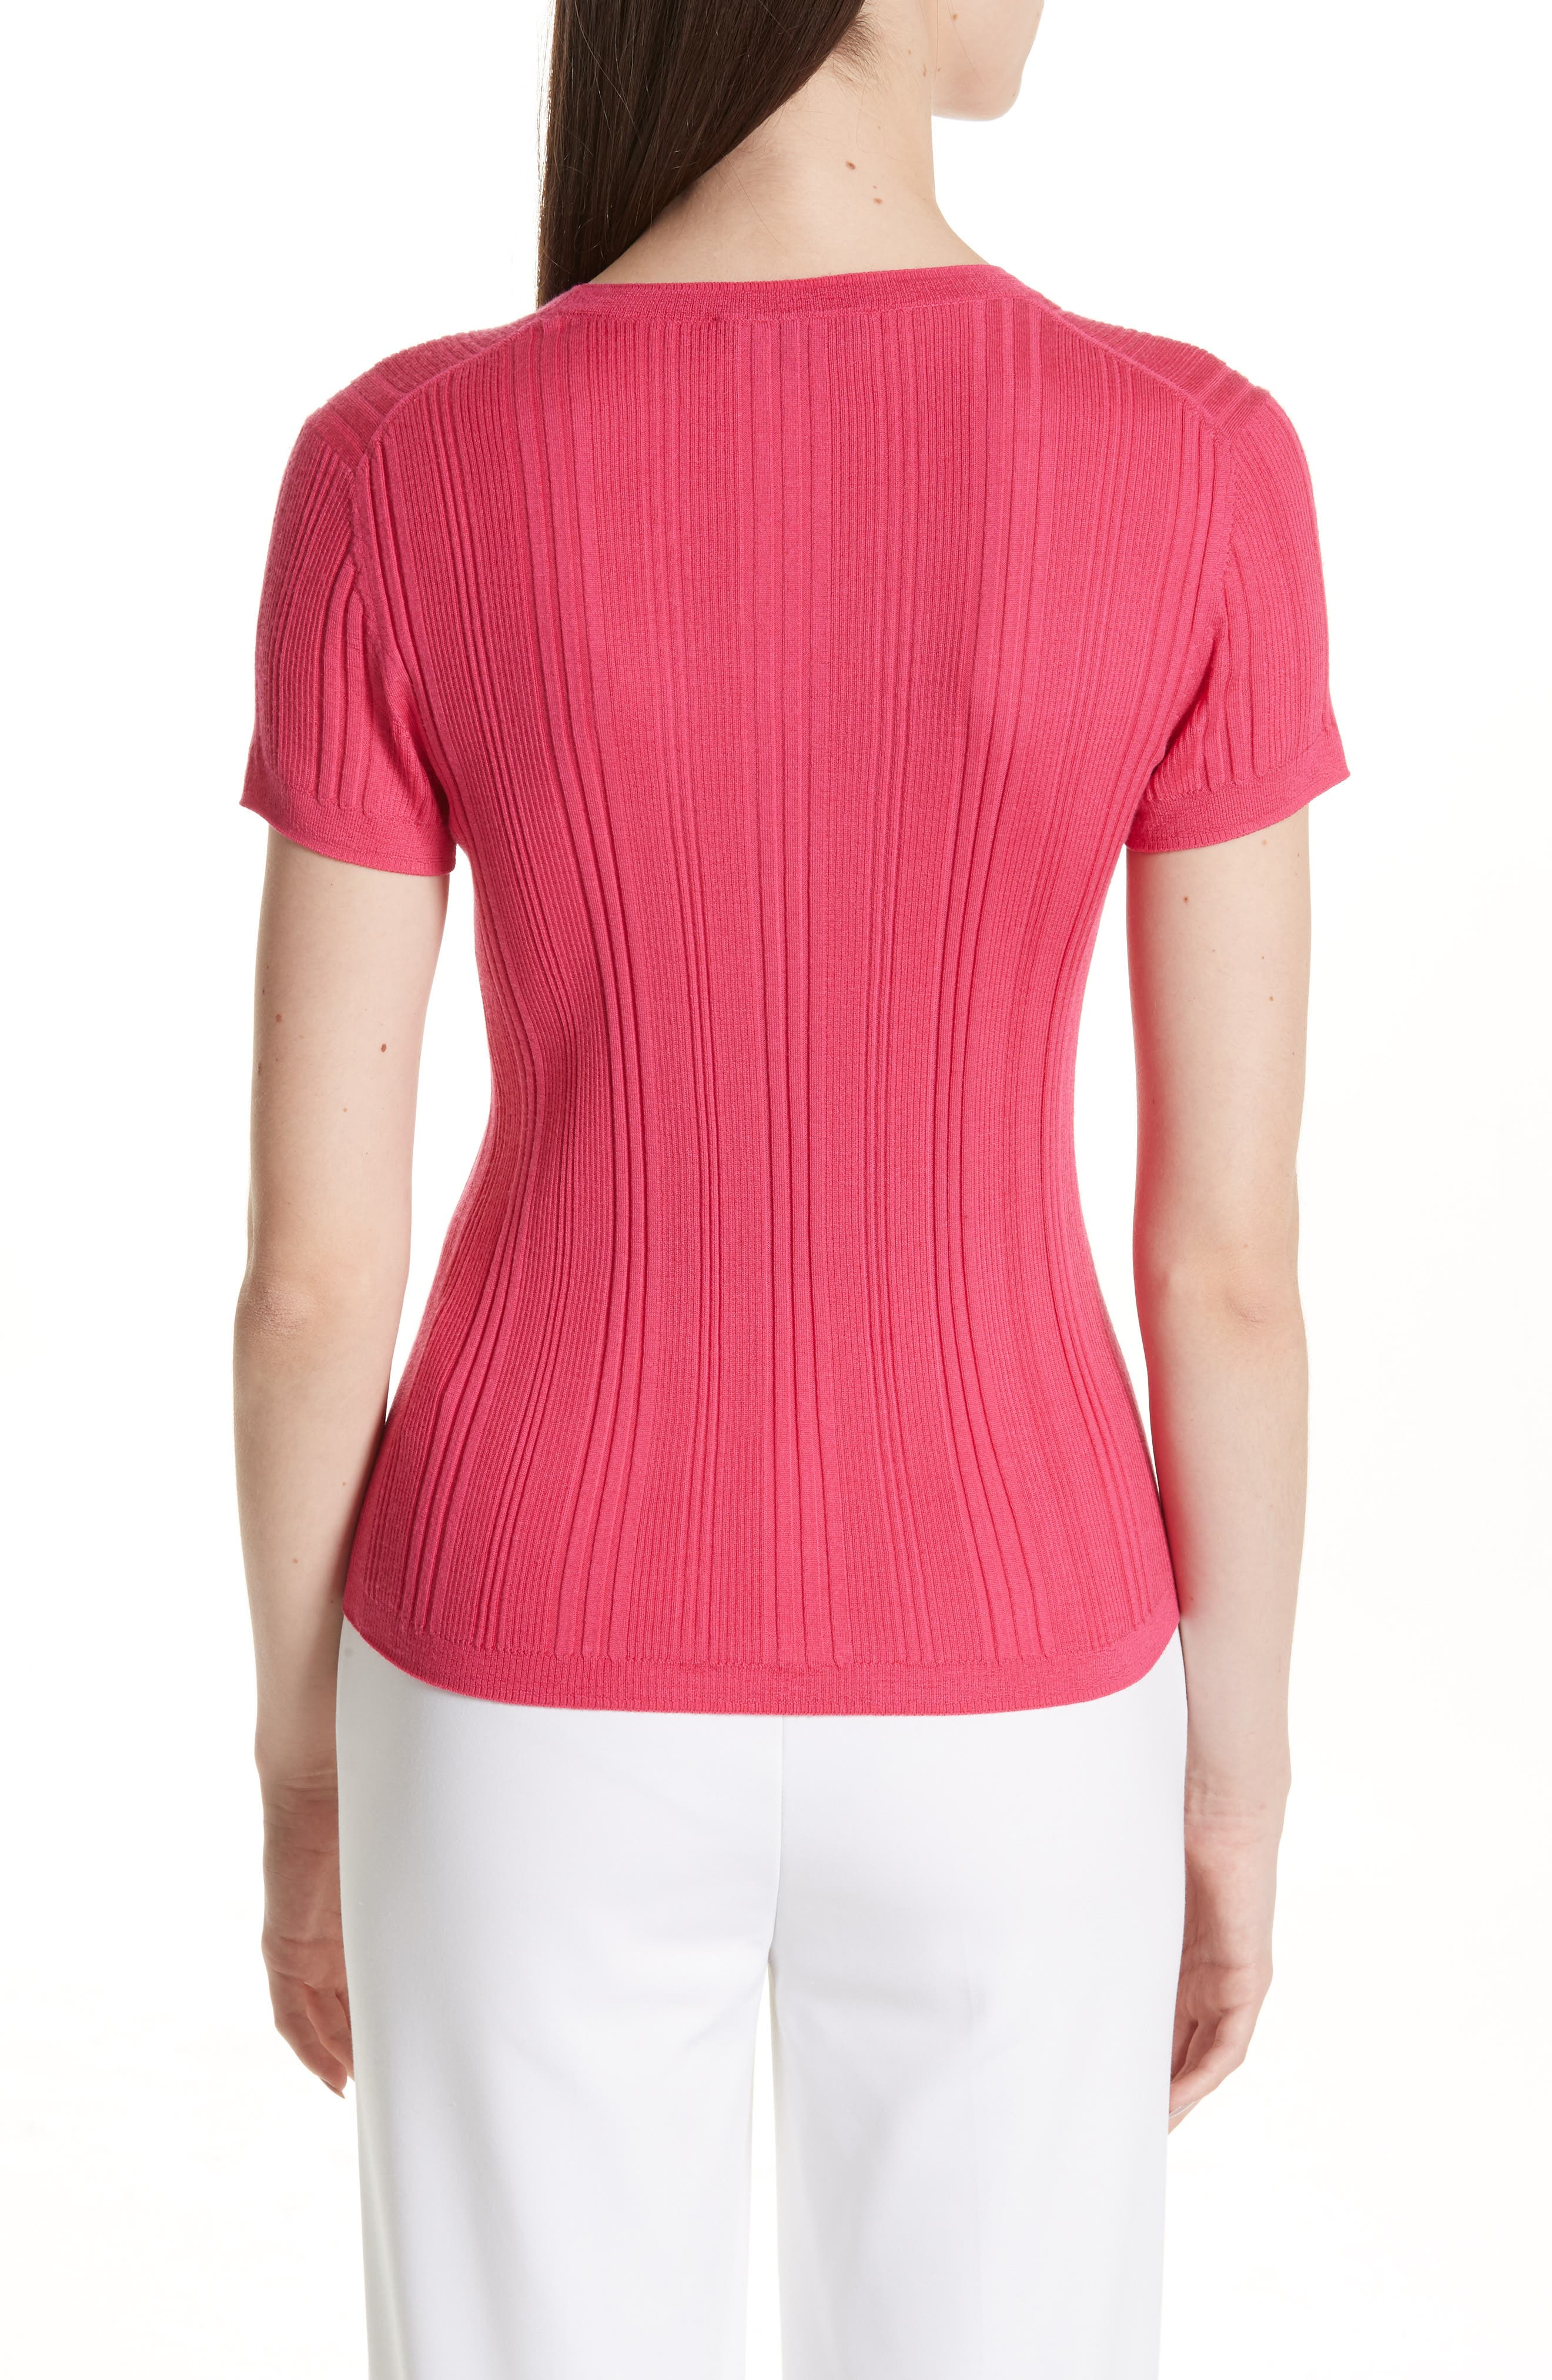 ST. JOHN COLLECTION, Superfine Variegated Rib Sweater, Alternate thumbnail 2, color, FLAMINGO